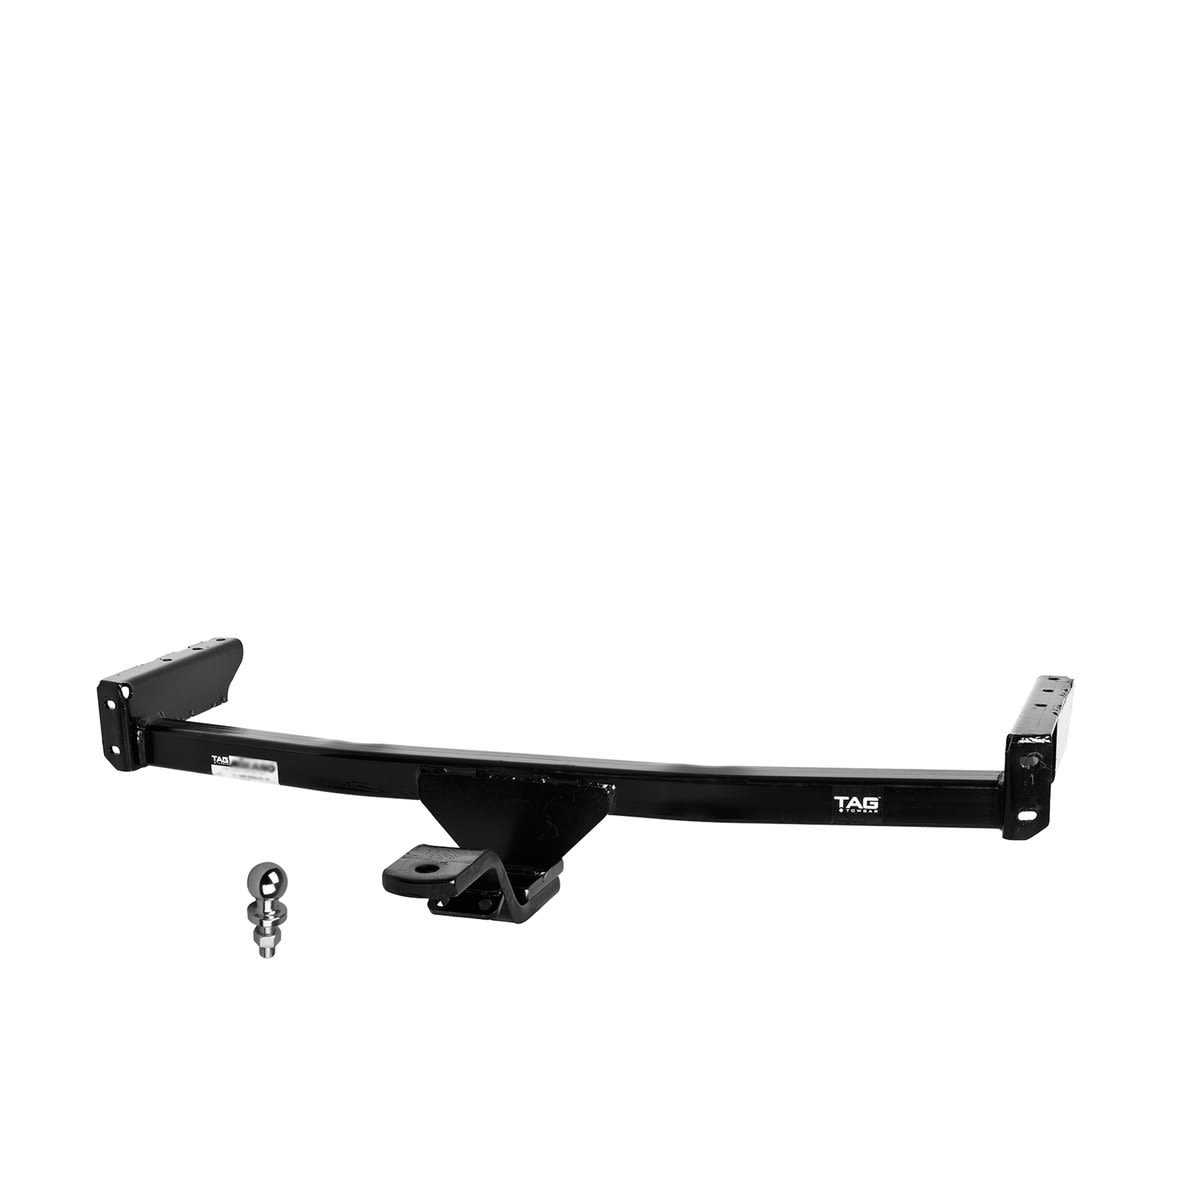 TAG Light Duty Towbar to suit Ford Fairlane (03/1995 - 02/1999), Fairmont (01/1994 - 09/2002), Falcon (01/1994 - 01/1998), LTD (03/1995 - 06/1999) - No Wiring Harness